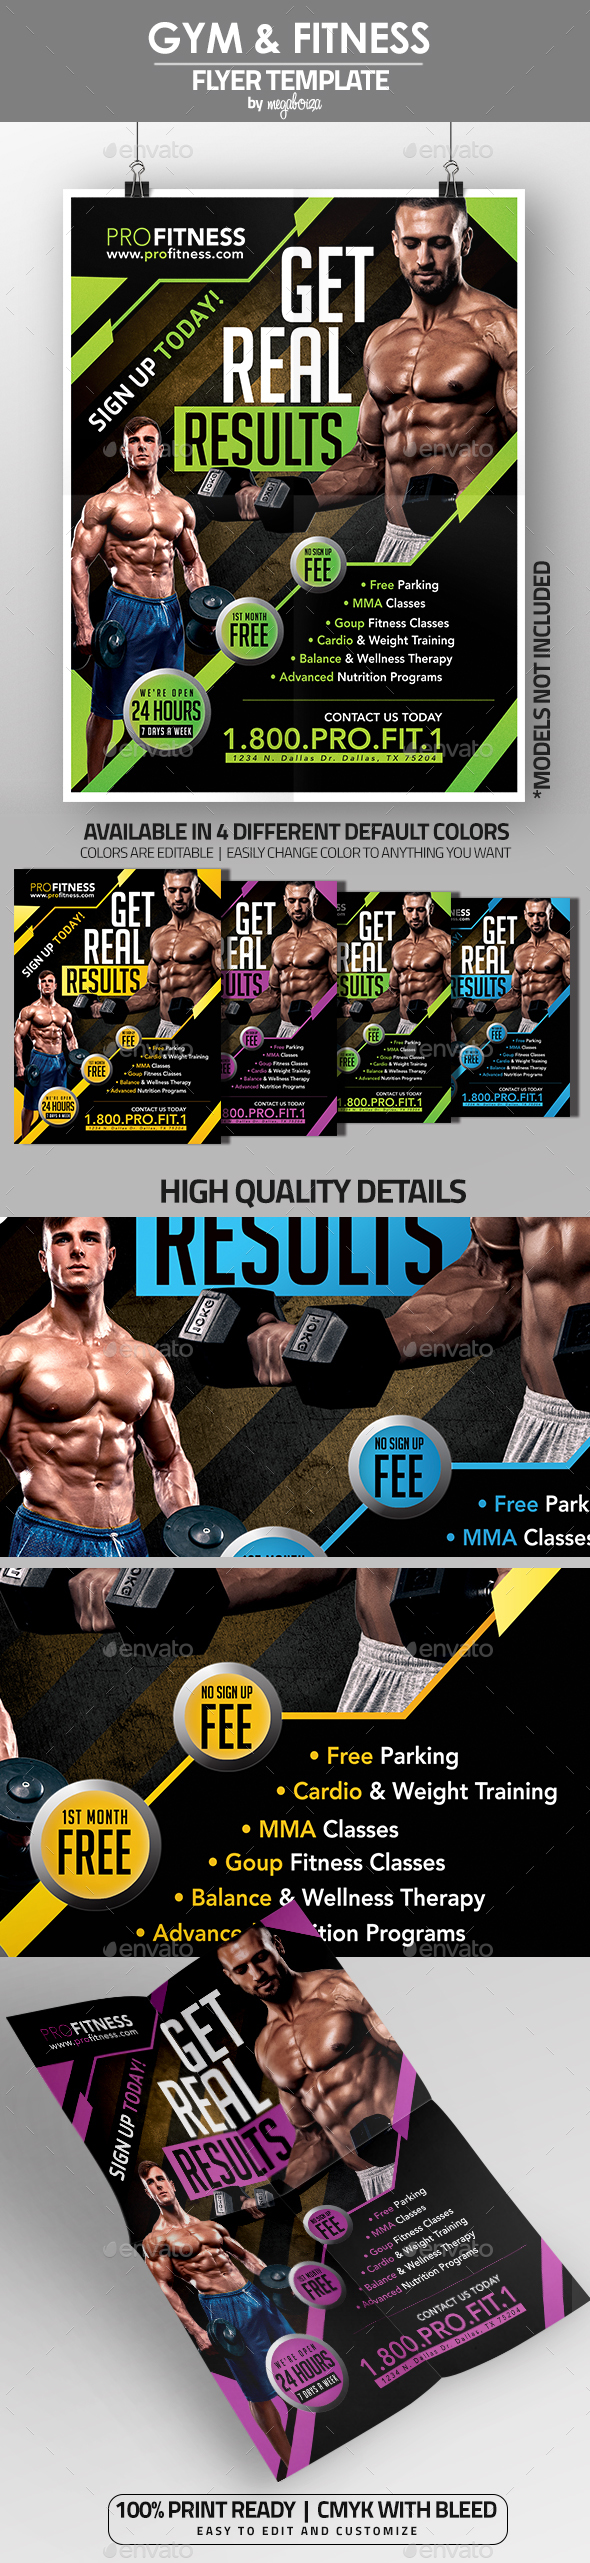 Gym & Fitness Flyer / Poster Template V1